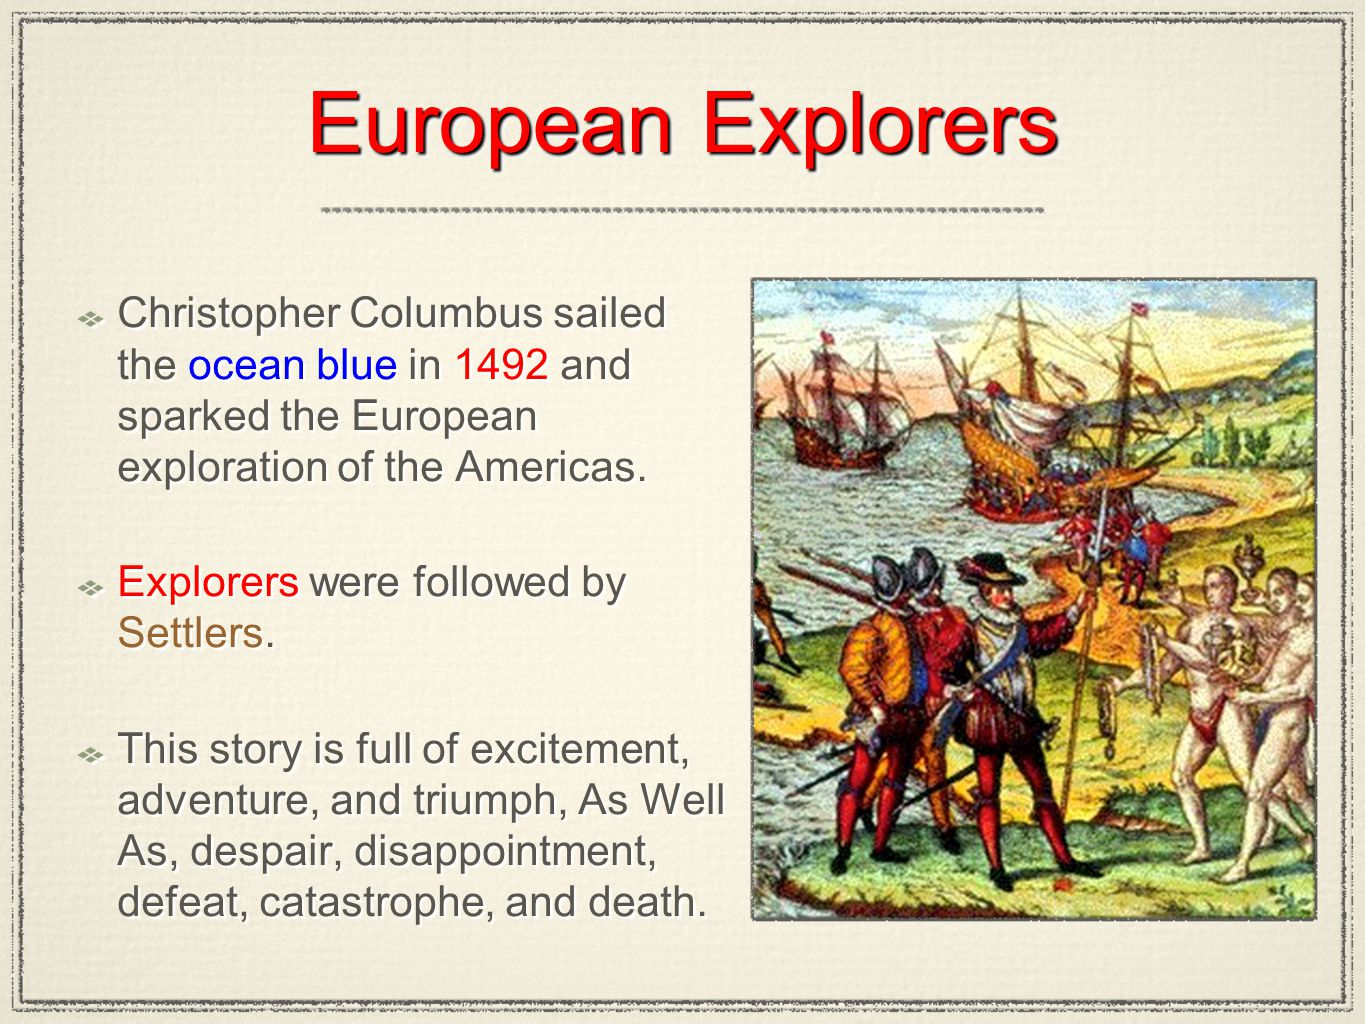 European Explorers Christopher Columbus sailed the ocean blue in 1492 and sparked the European exploration of the Americas.